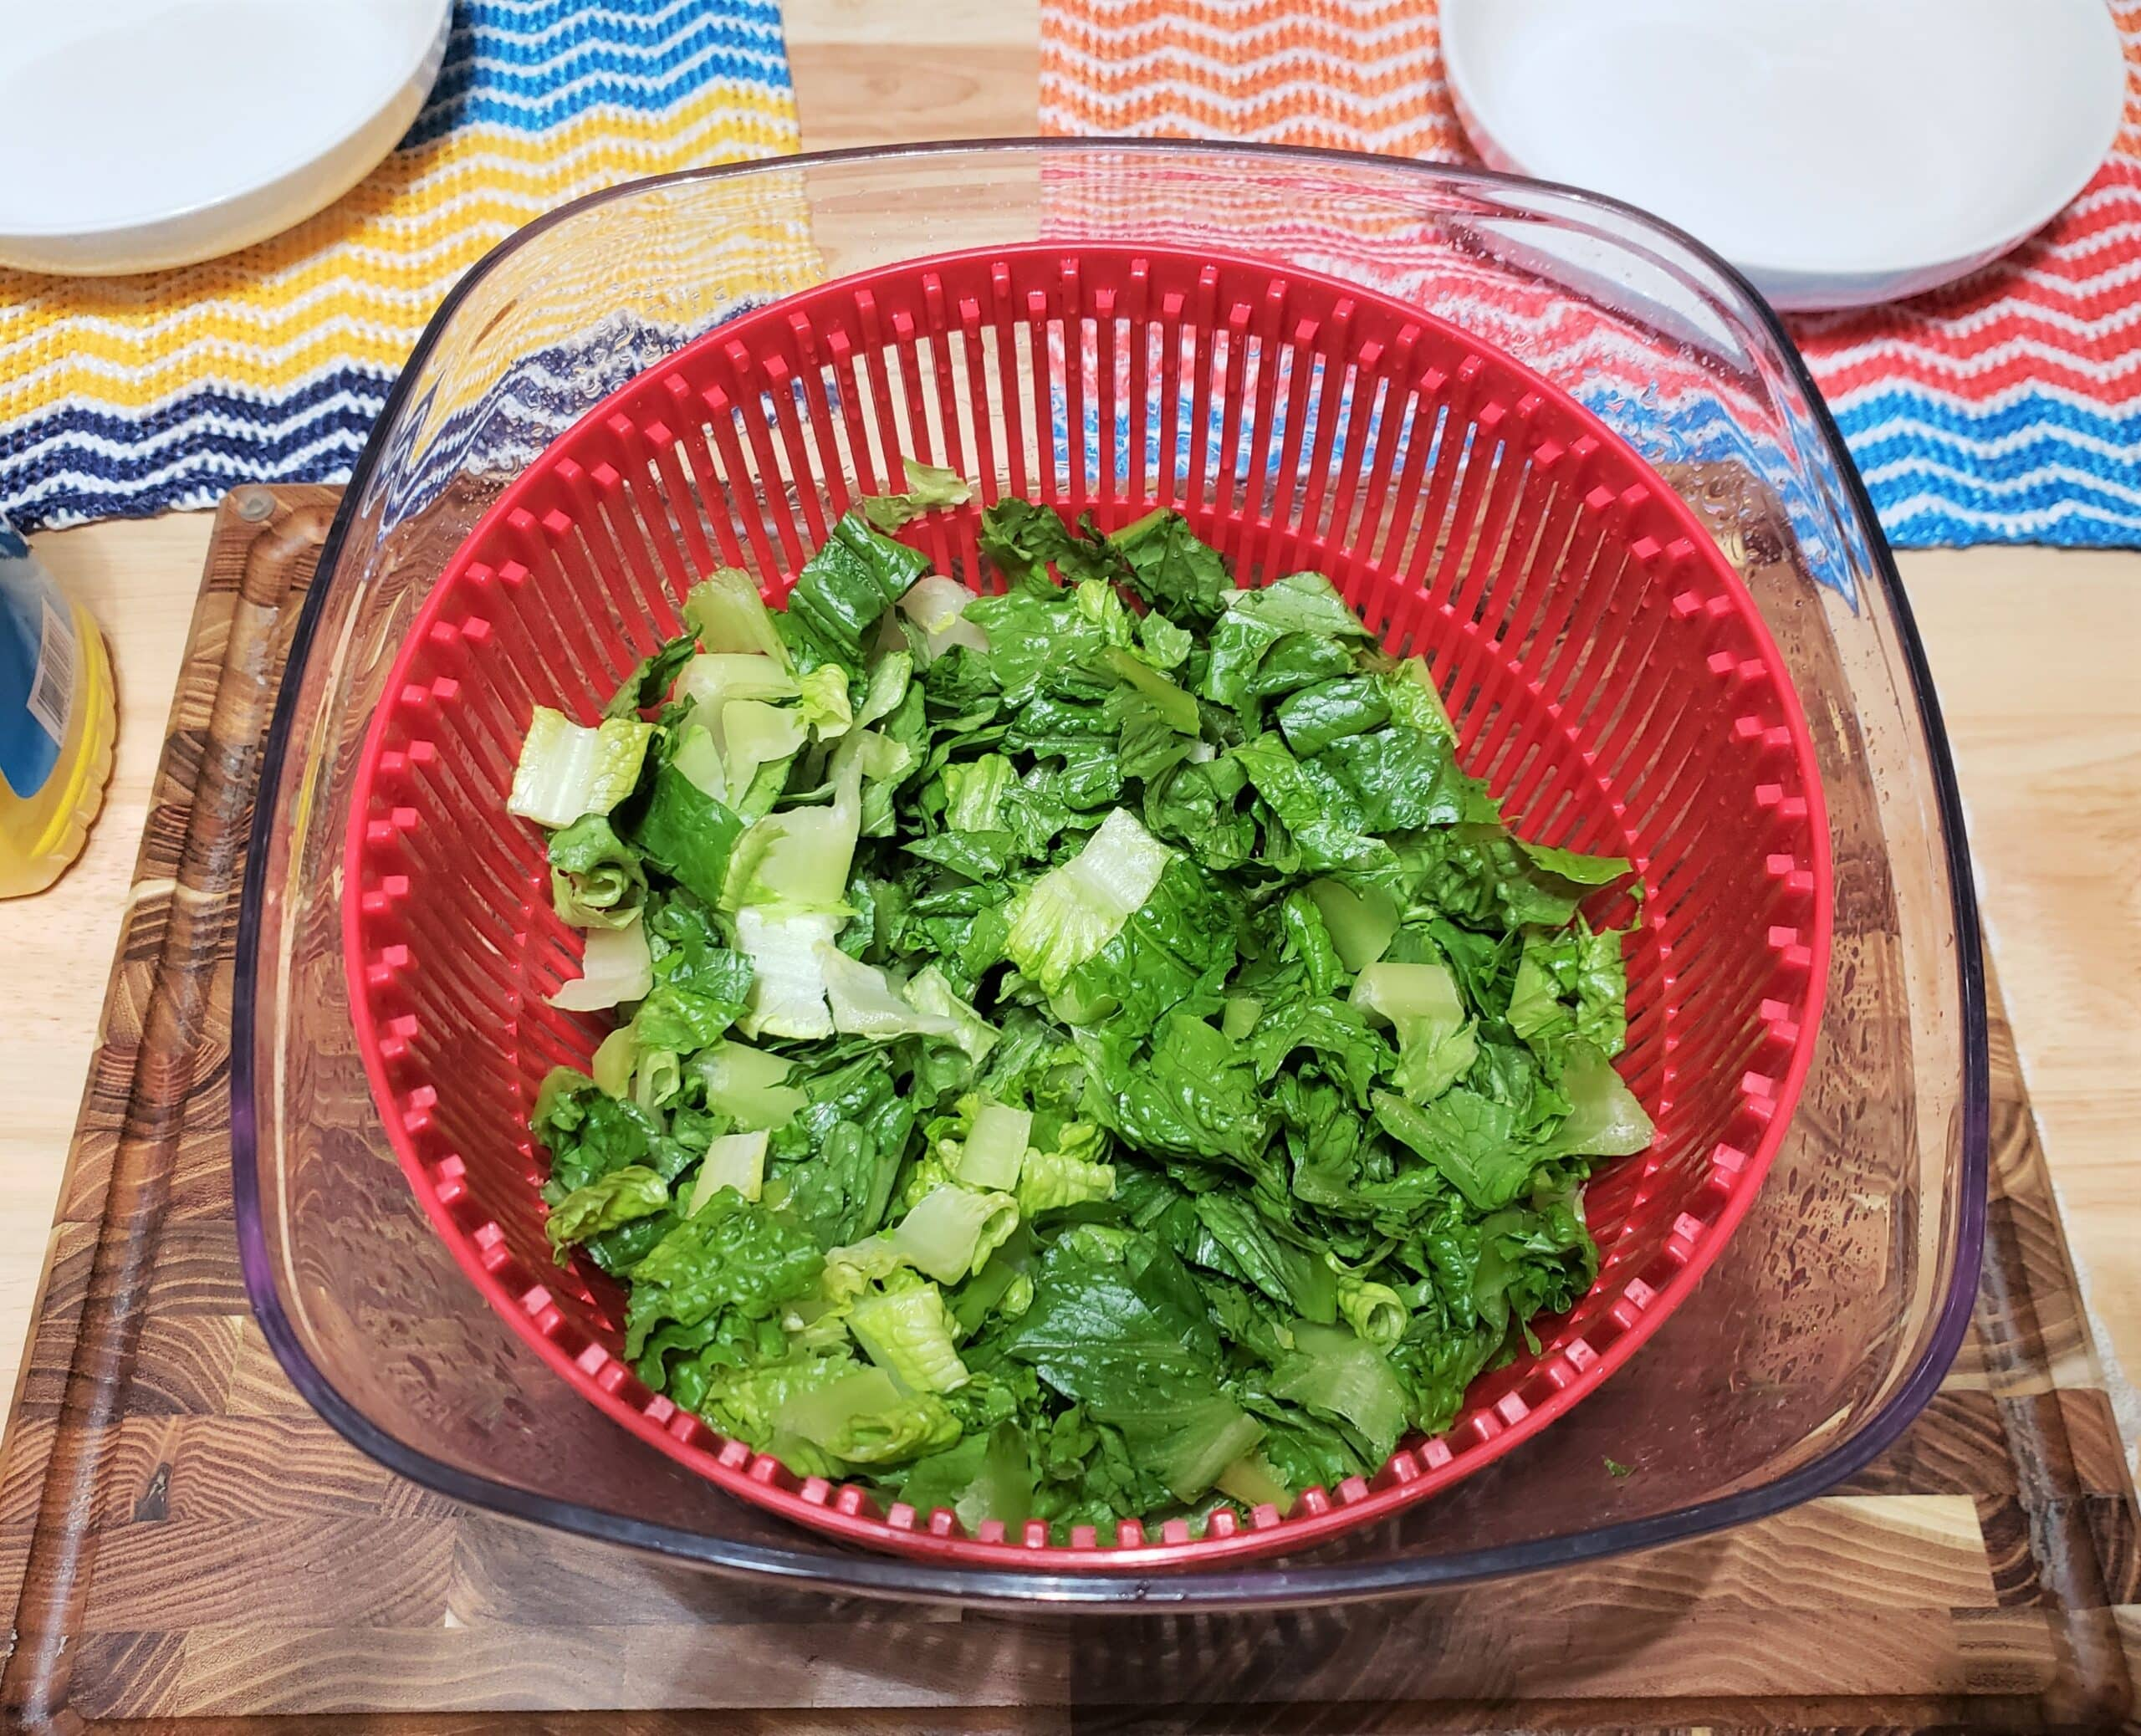 Chopped lettuce in red salad spinner